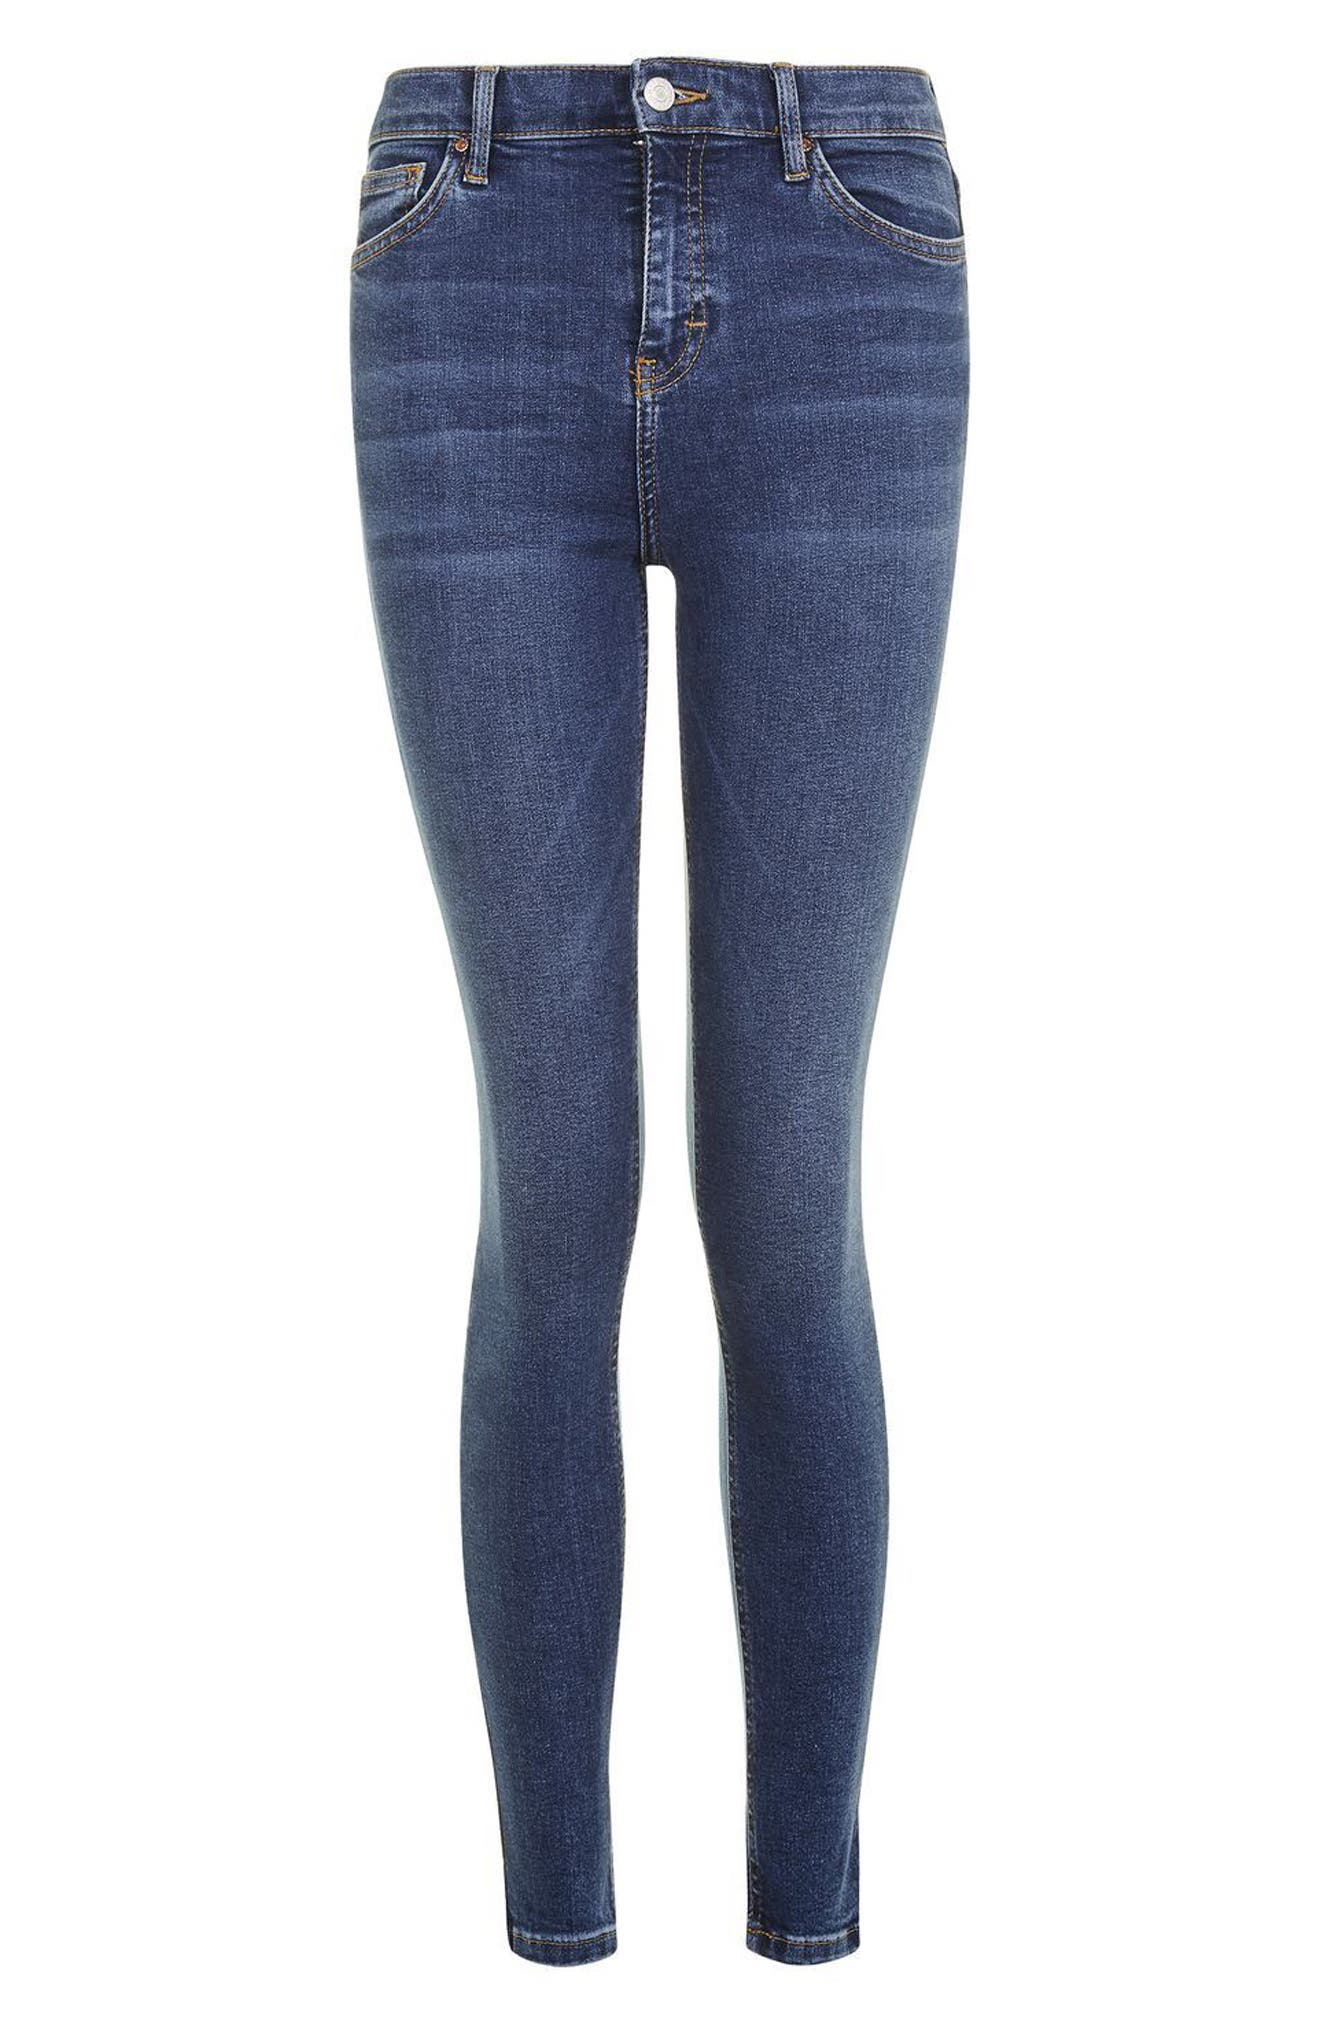 Alternate Image 1 Selected - Topshop Indigo High Waist Skinny Jeans